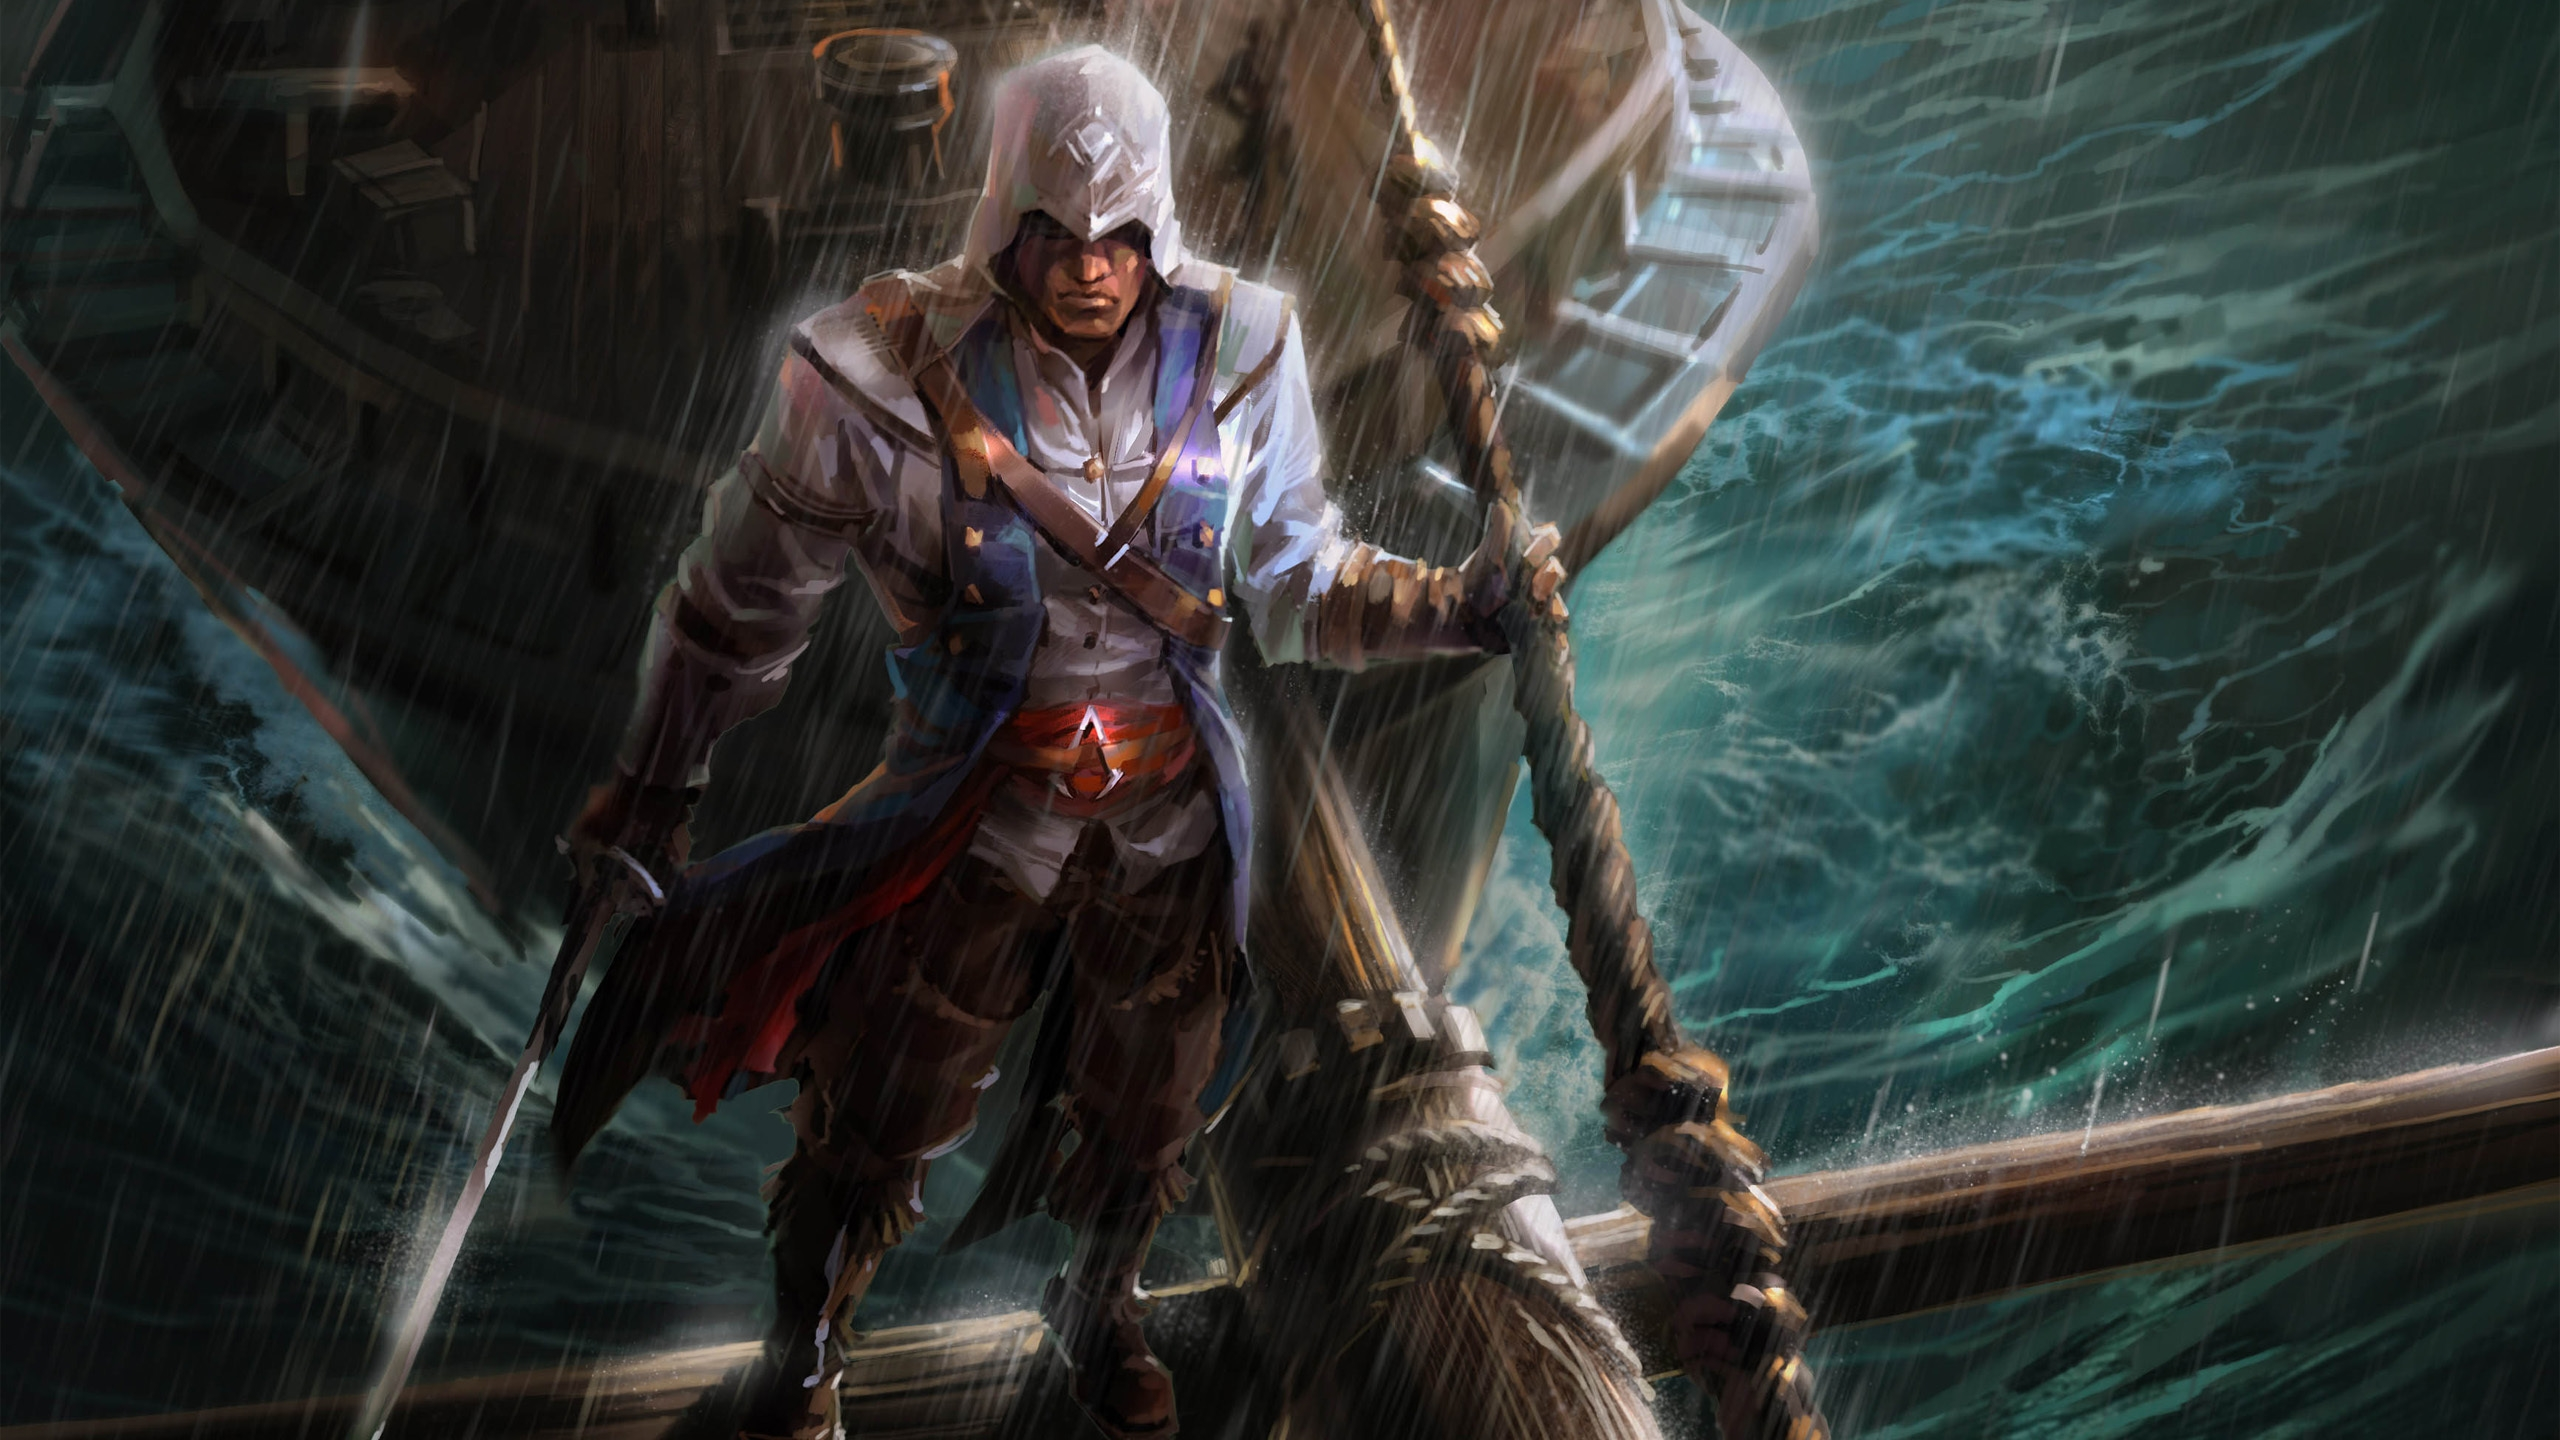 Assassins Creed Fan Art Hd Wallpaper Wallpaperfx